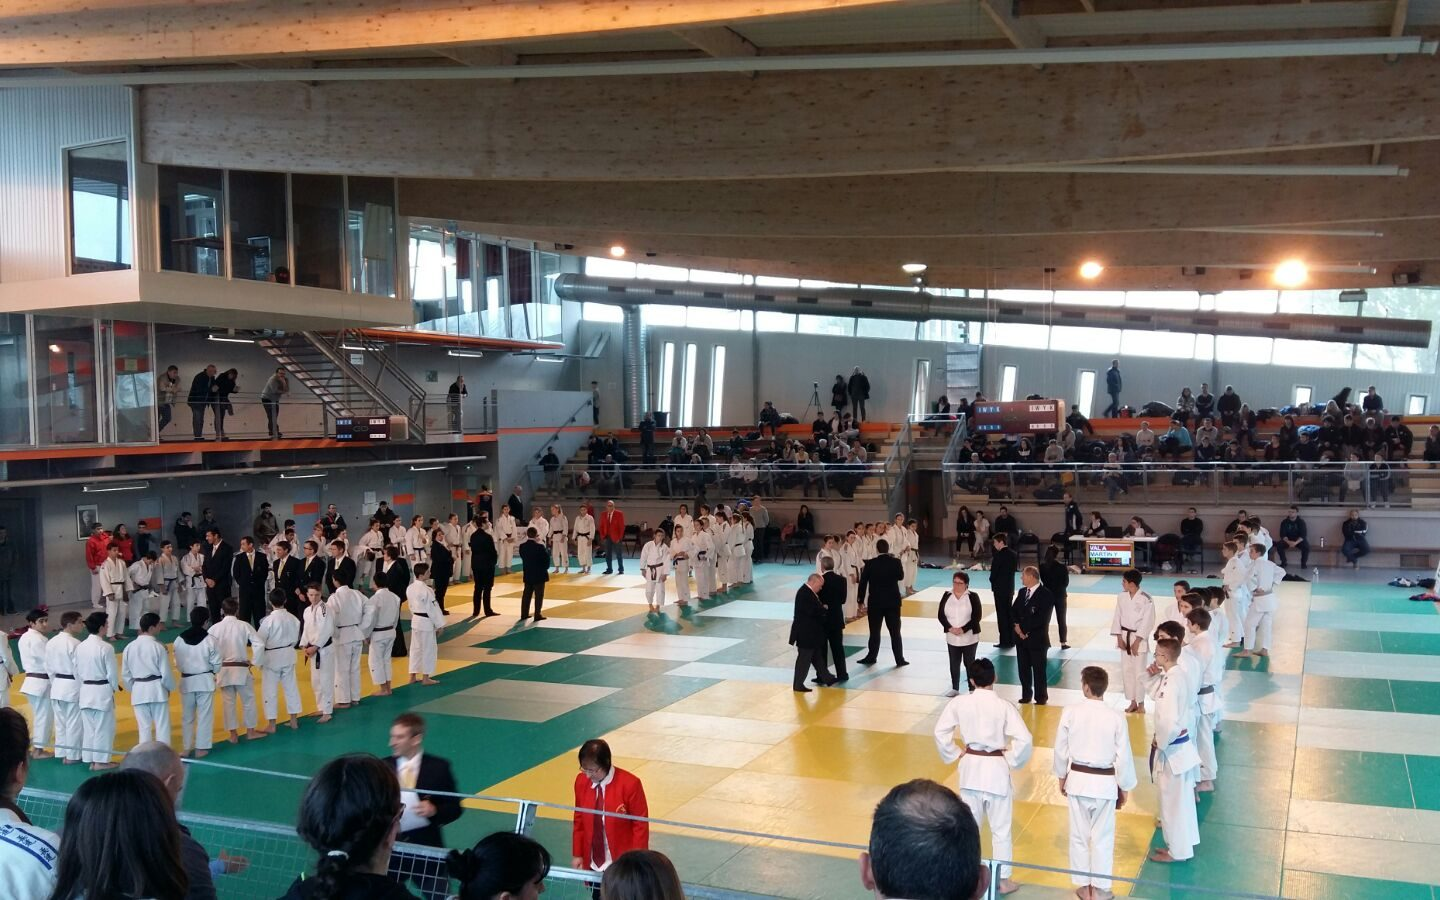 Torneo Cadete Couloumieux-Chamiers (Francia) 28/01/18